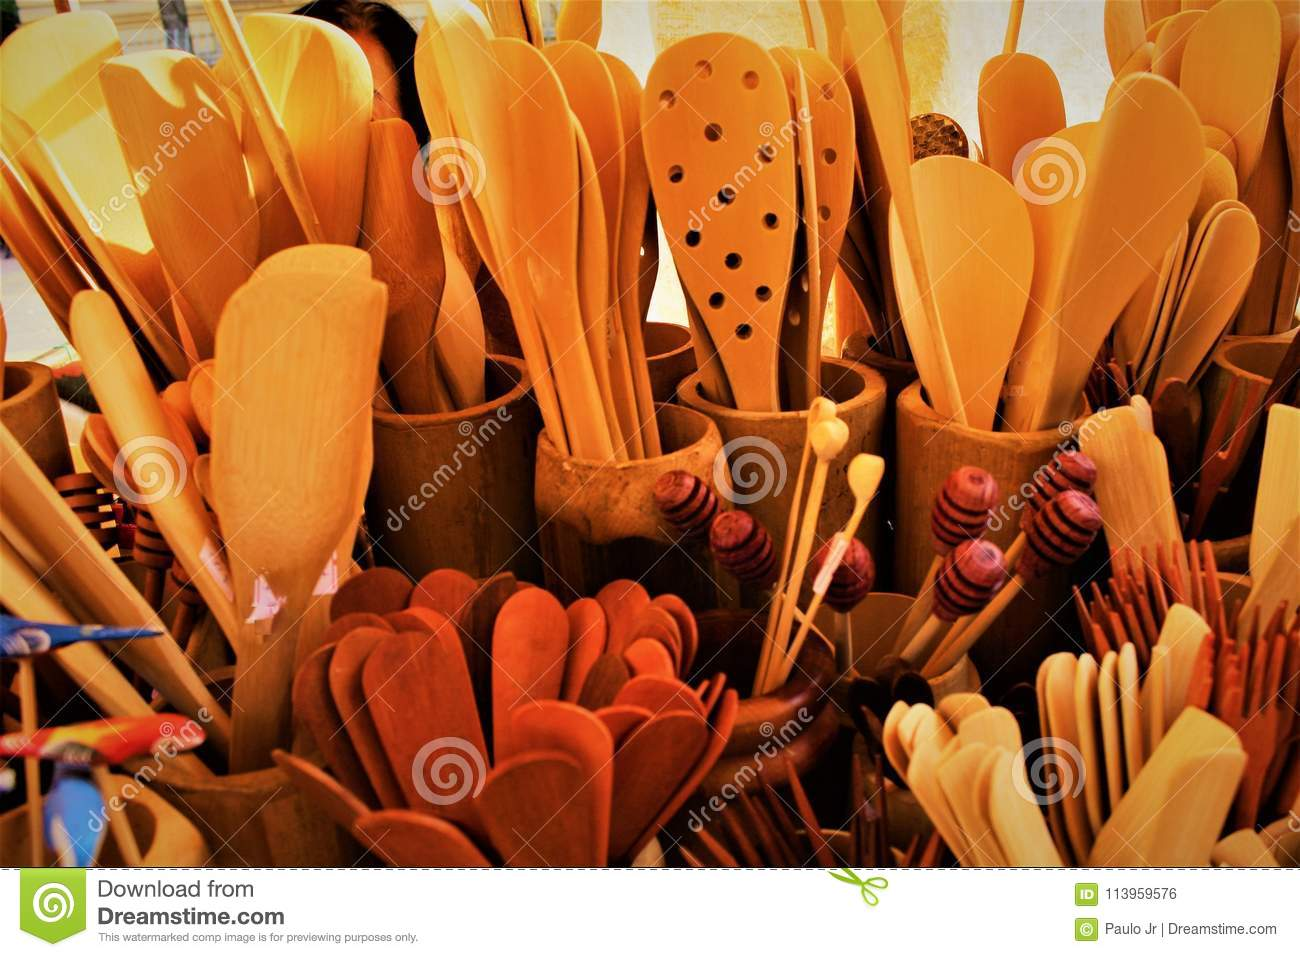 The wooden spoons and their texture.